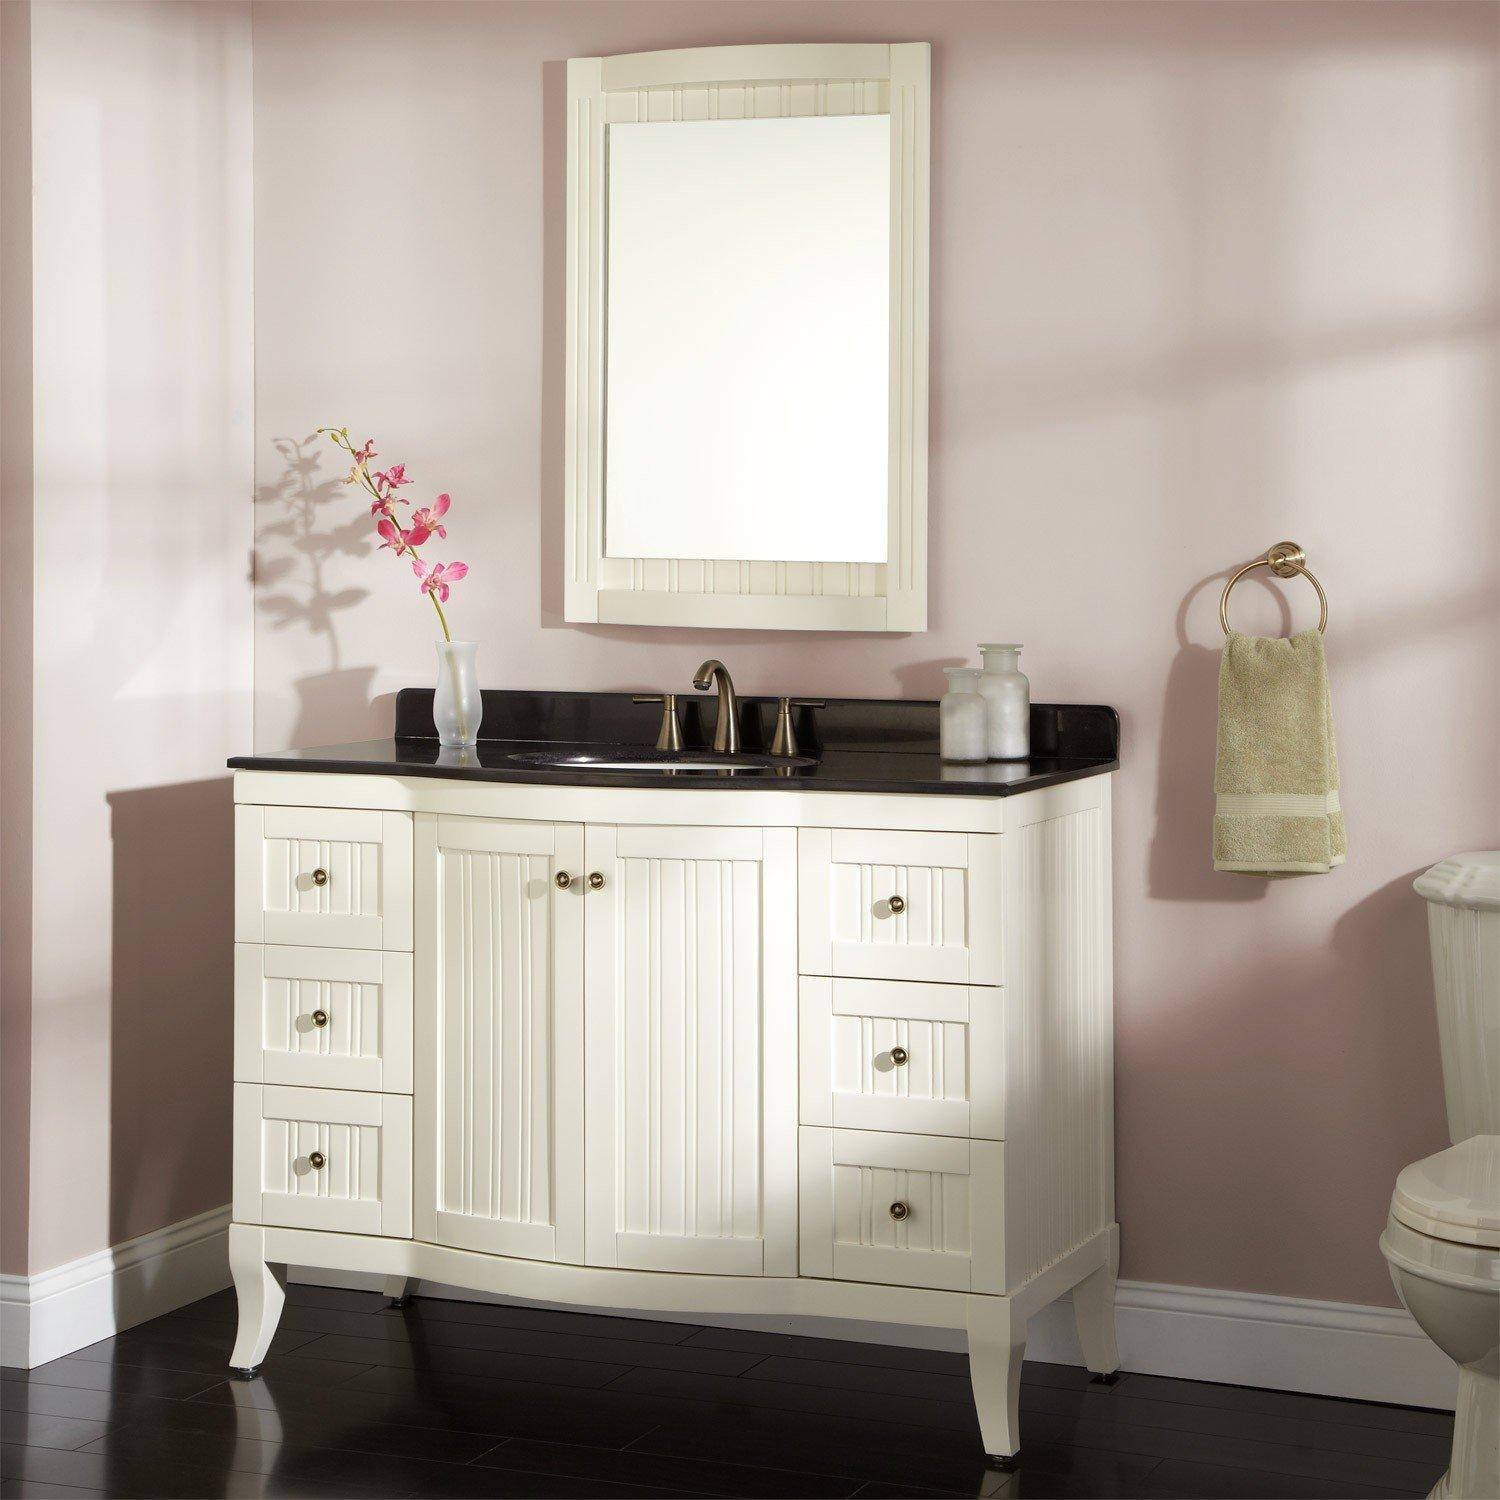 Bathroom : Beautiful Bathroom Vanity Mirrors Decorative Mirrors Pertaining To Decorative Mirrors For Bathroom Vanity (Image 4 of 20)